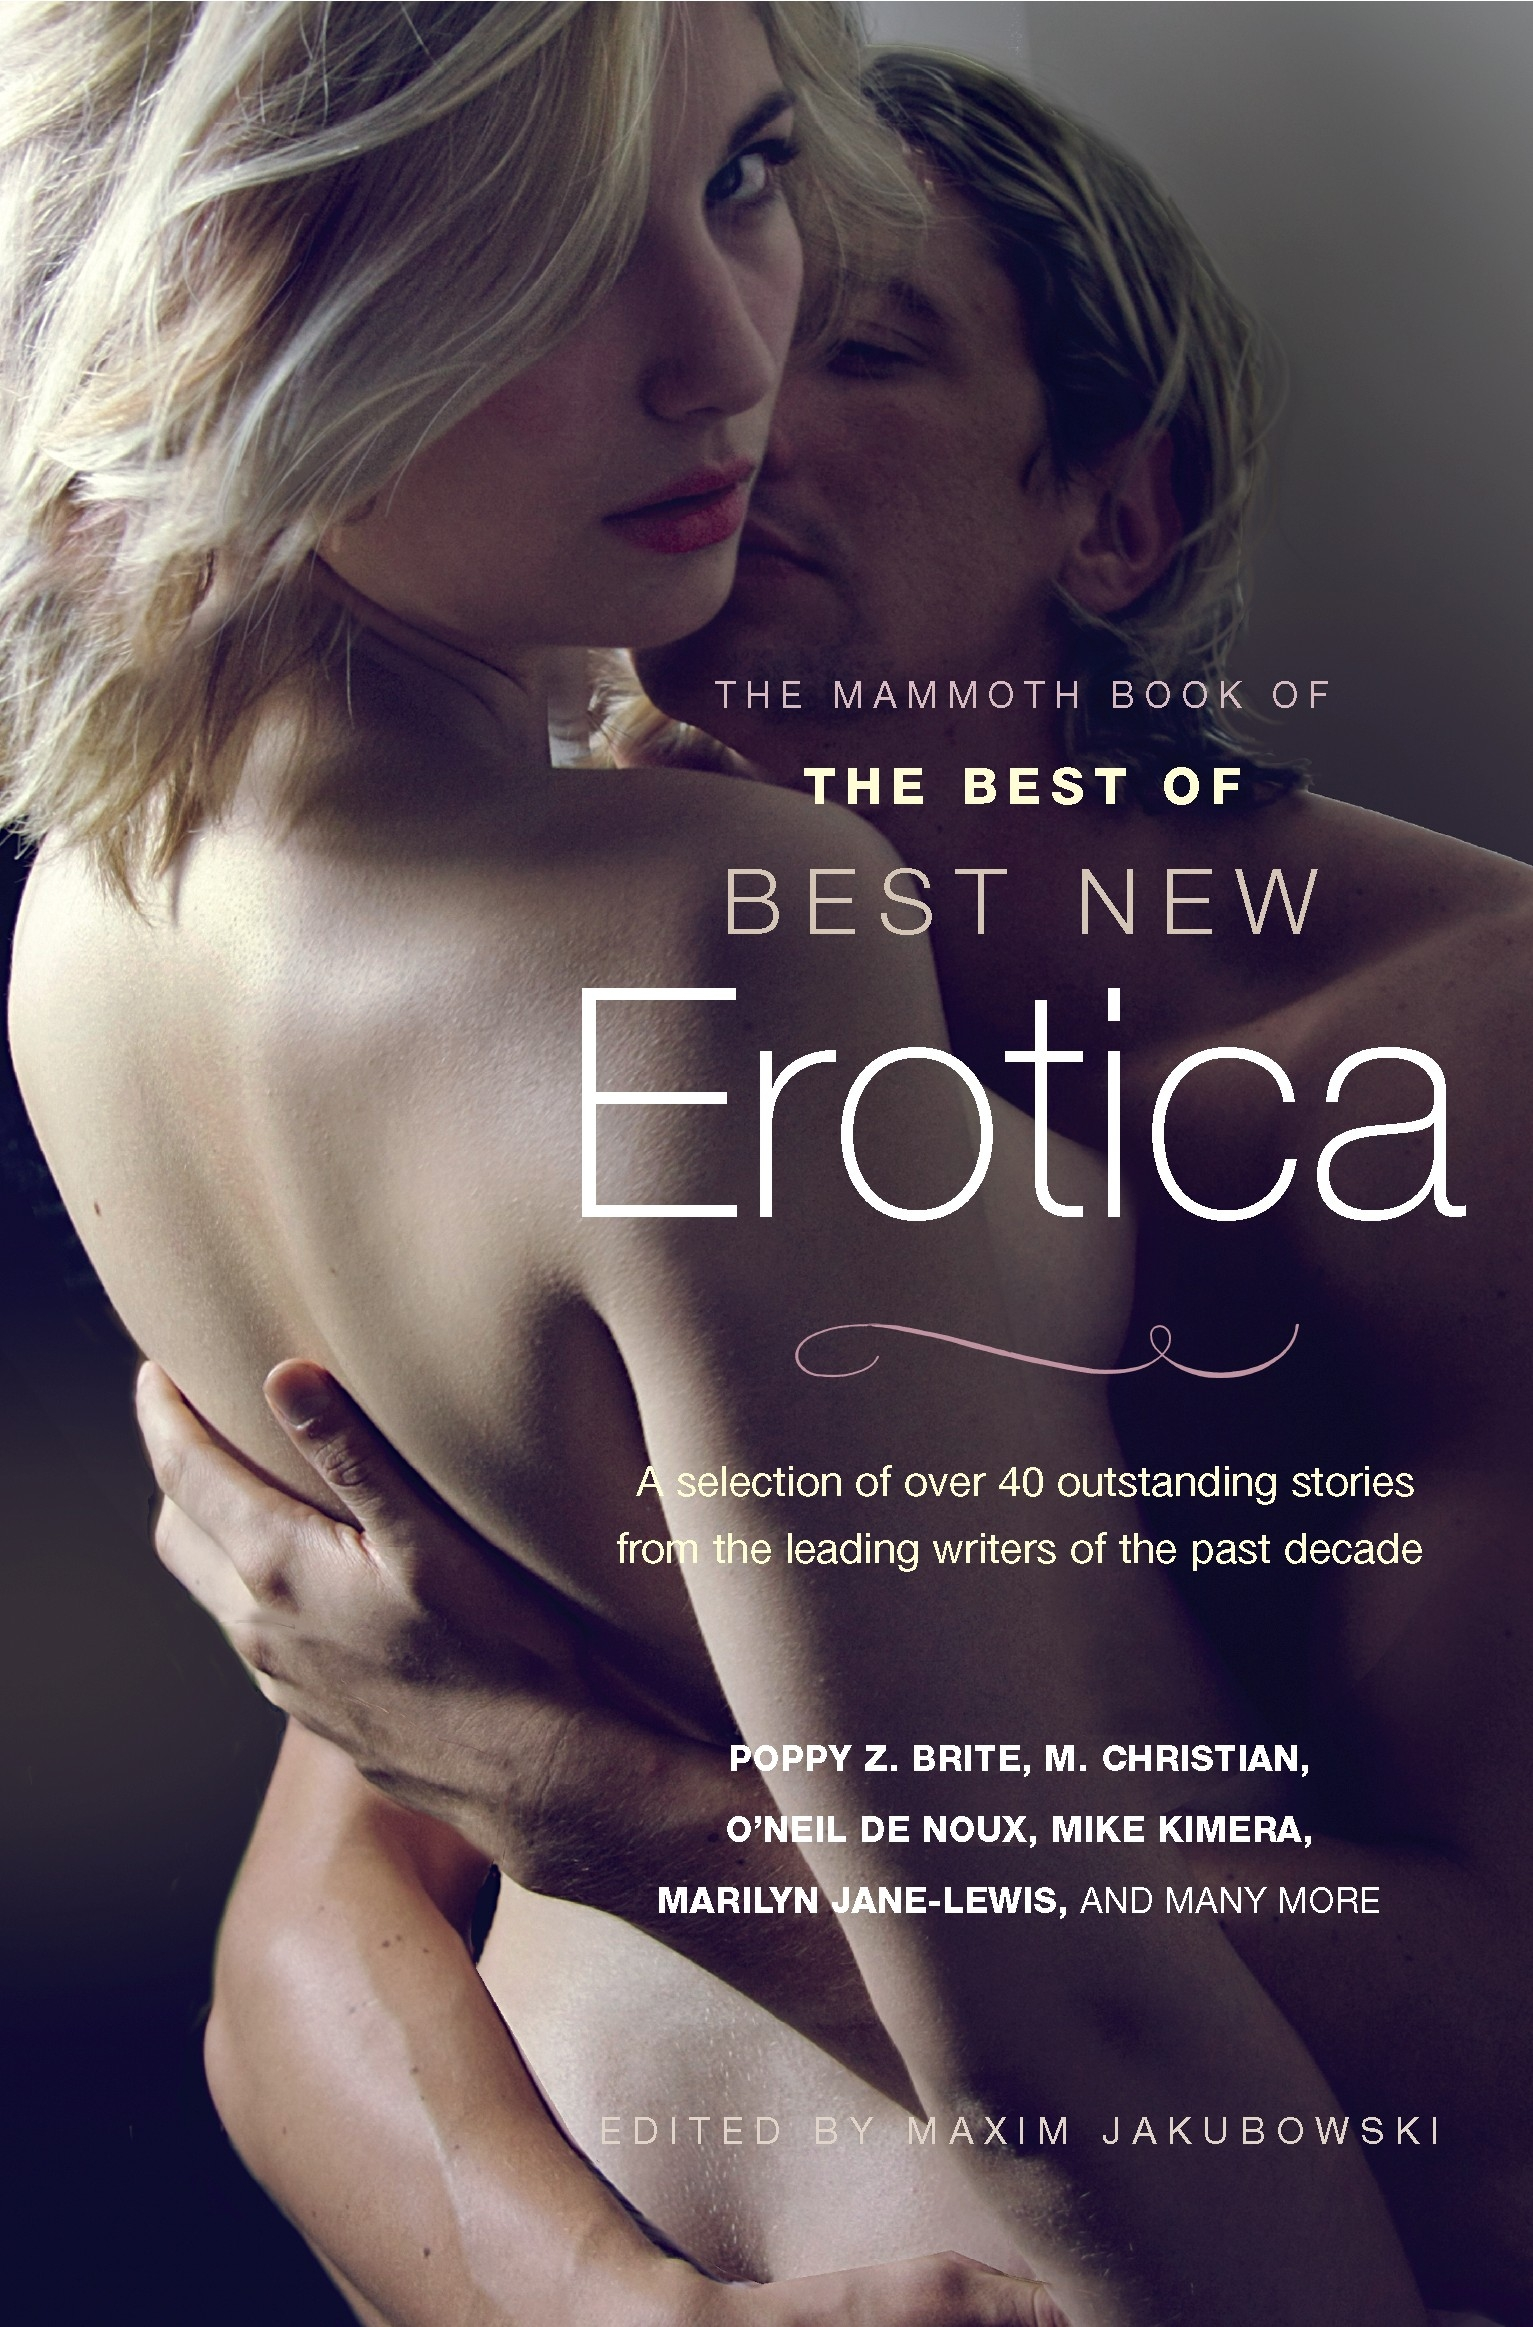 The Mammoth Book of the Best New Erotica